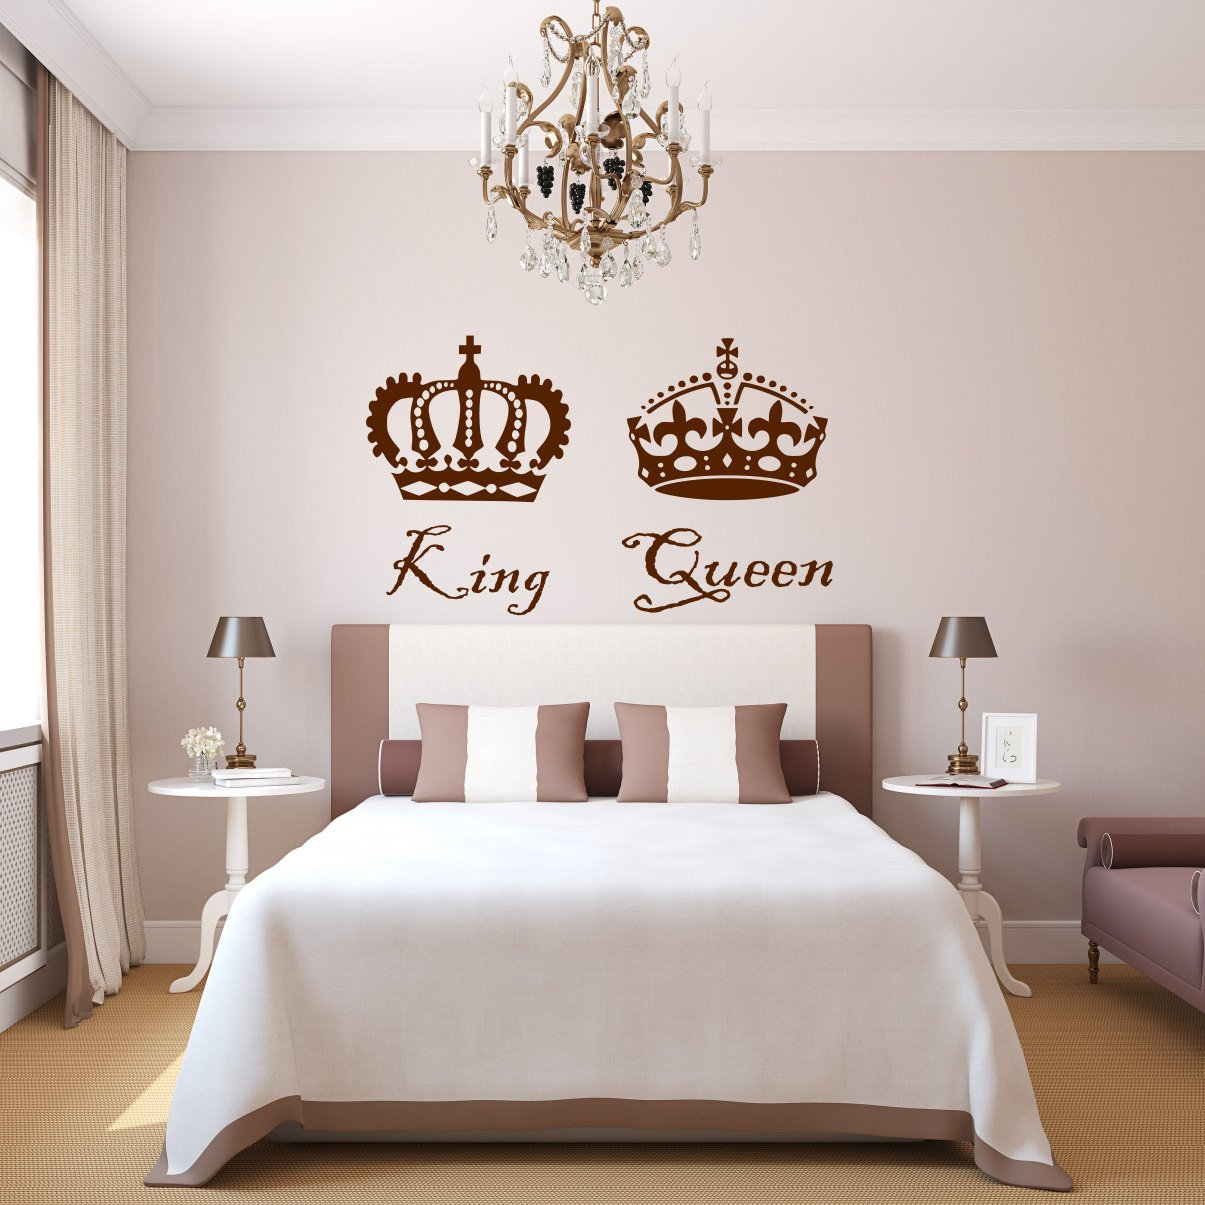 King and Queen Bedroom Decor Beautiful King and Queen Decal King and Queen Decor King and Queen Queen King King and Queen Art